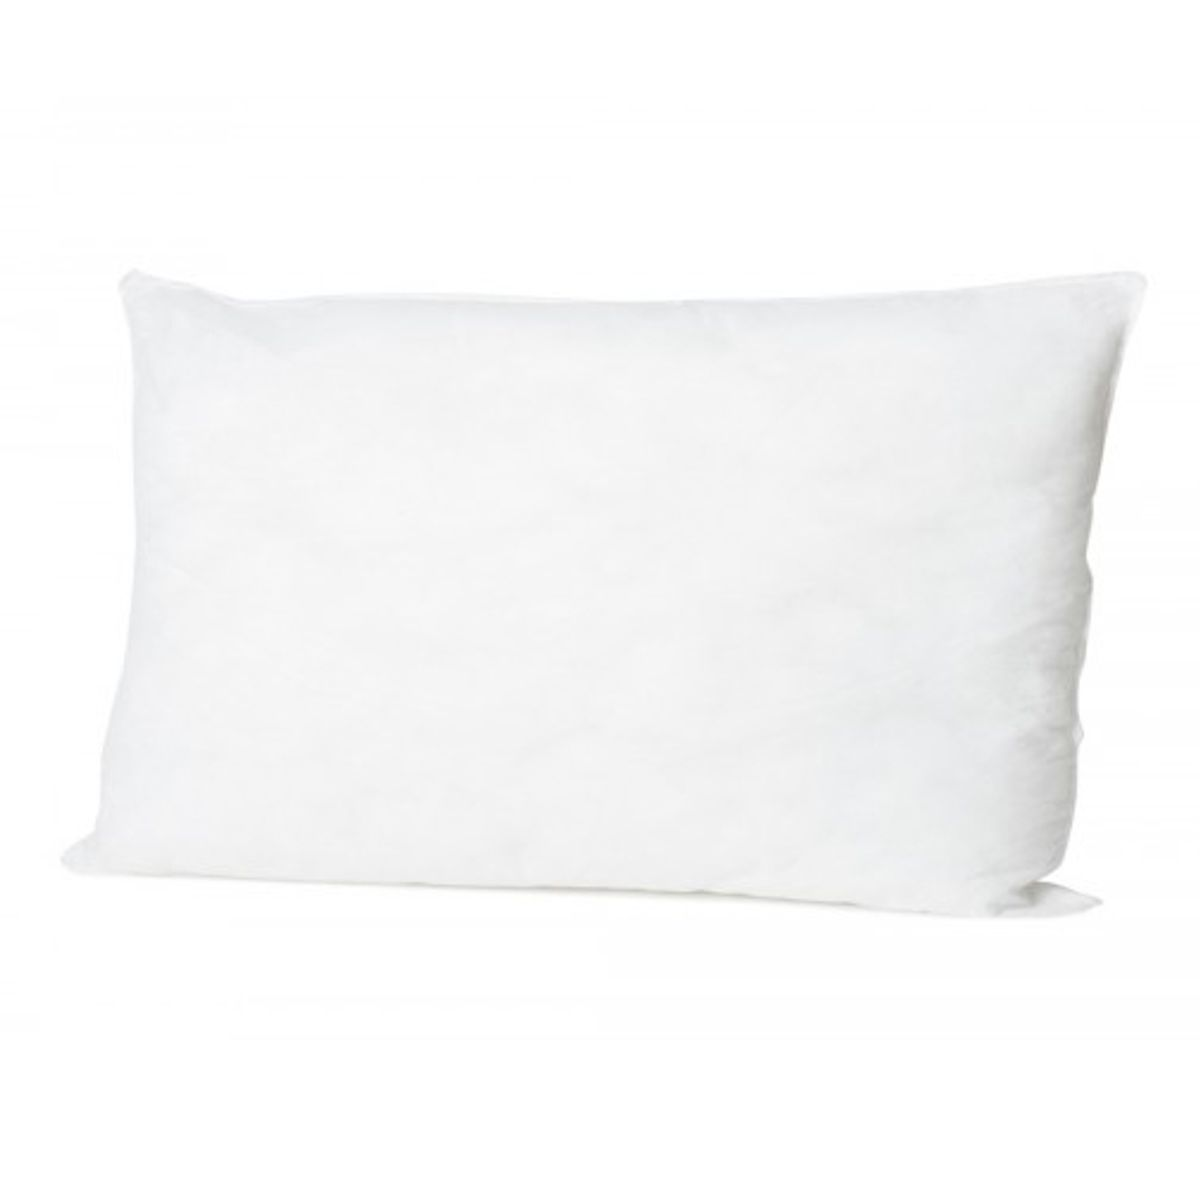 Coussin 60x40 Garnissage De Coussin 40x60 En Polyester Harmony